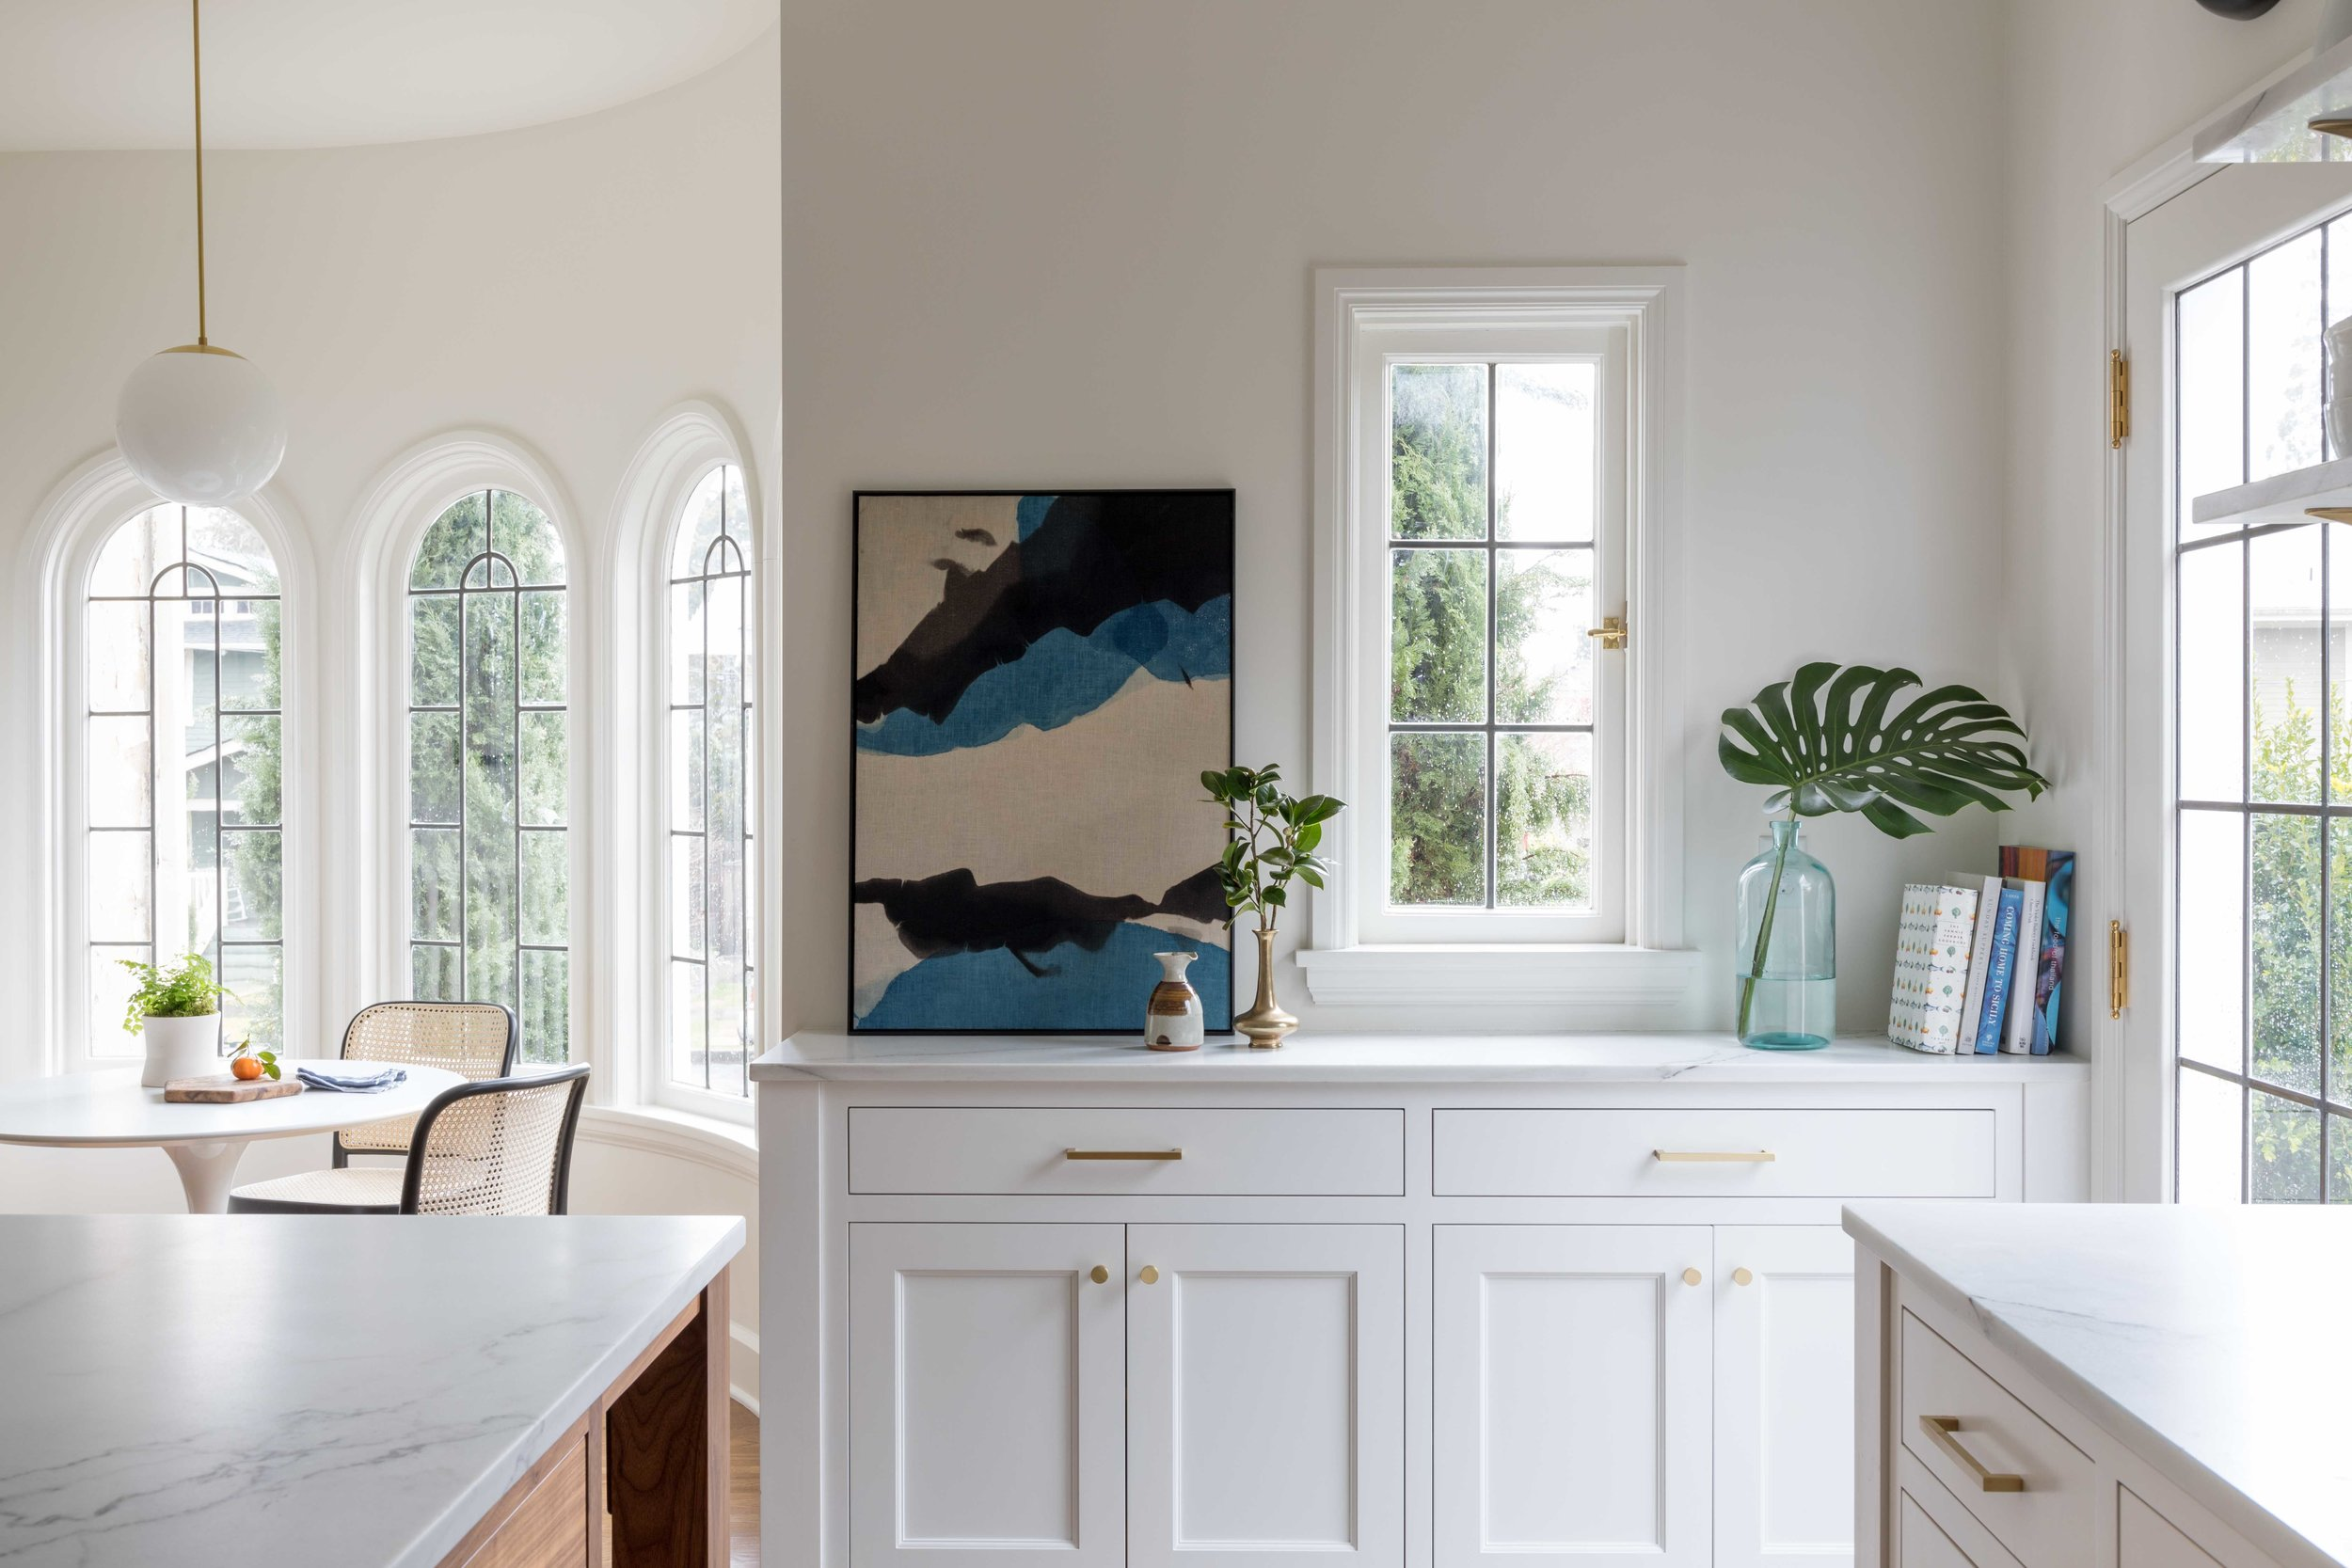 Open Bright Kitchen with Custom Island, Living Space & Brass Details | Casework Interior Design | Portland, OR